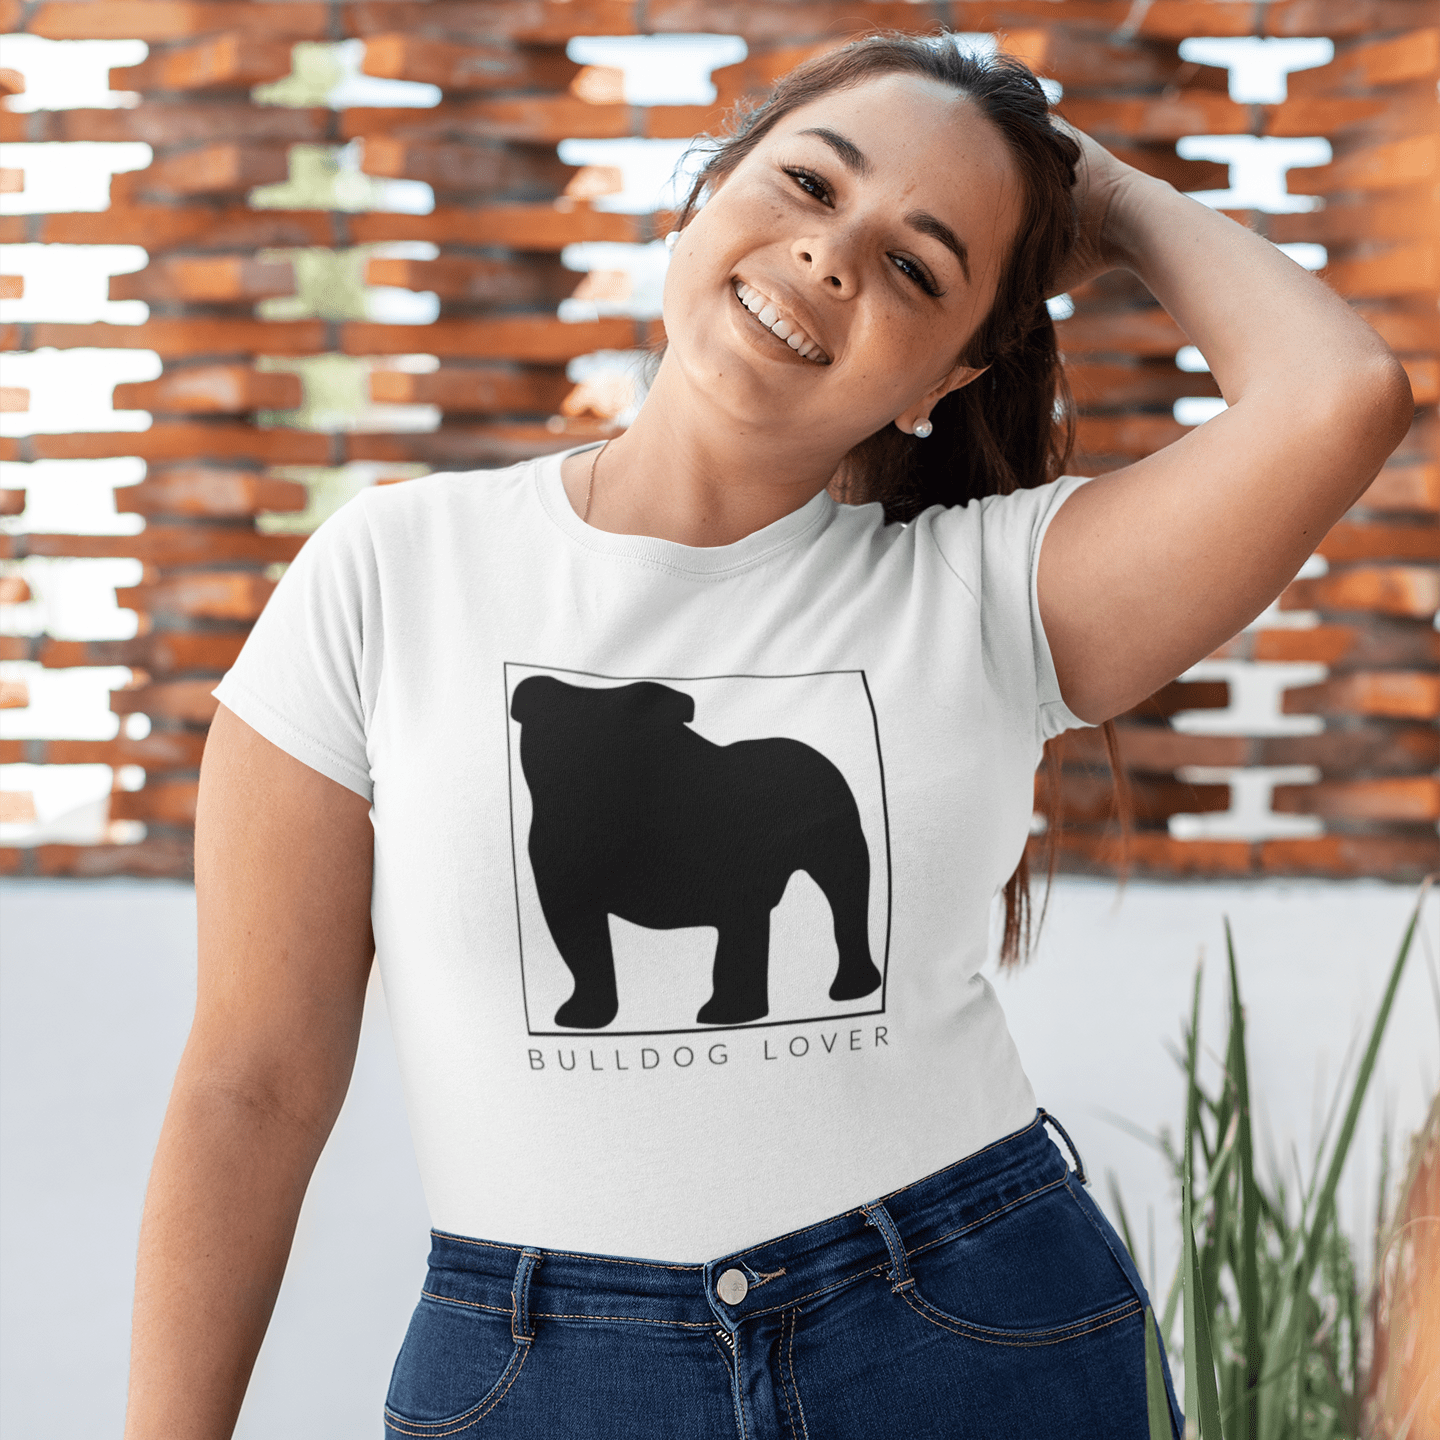 Bulldog Lover Short Sleeves Shirt - barkandluv